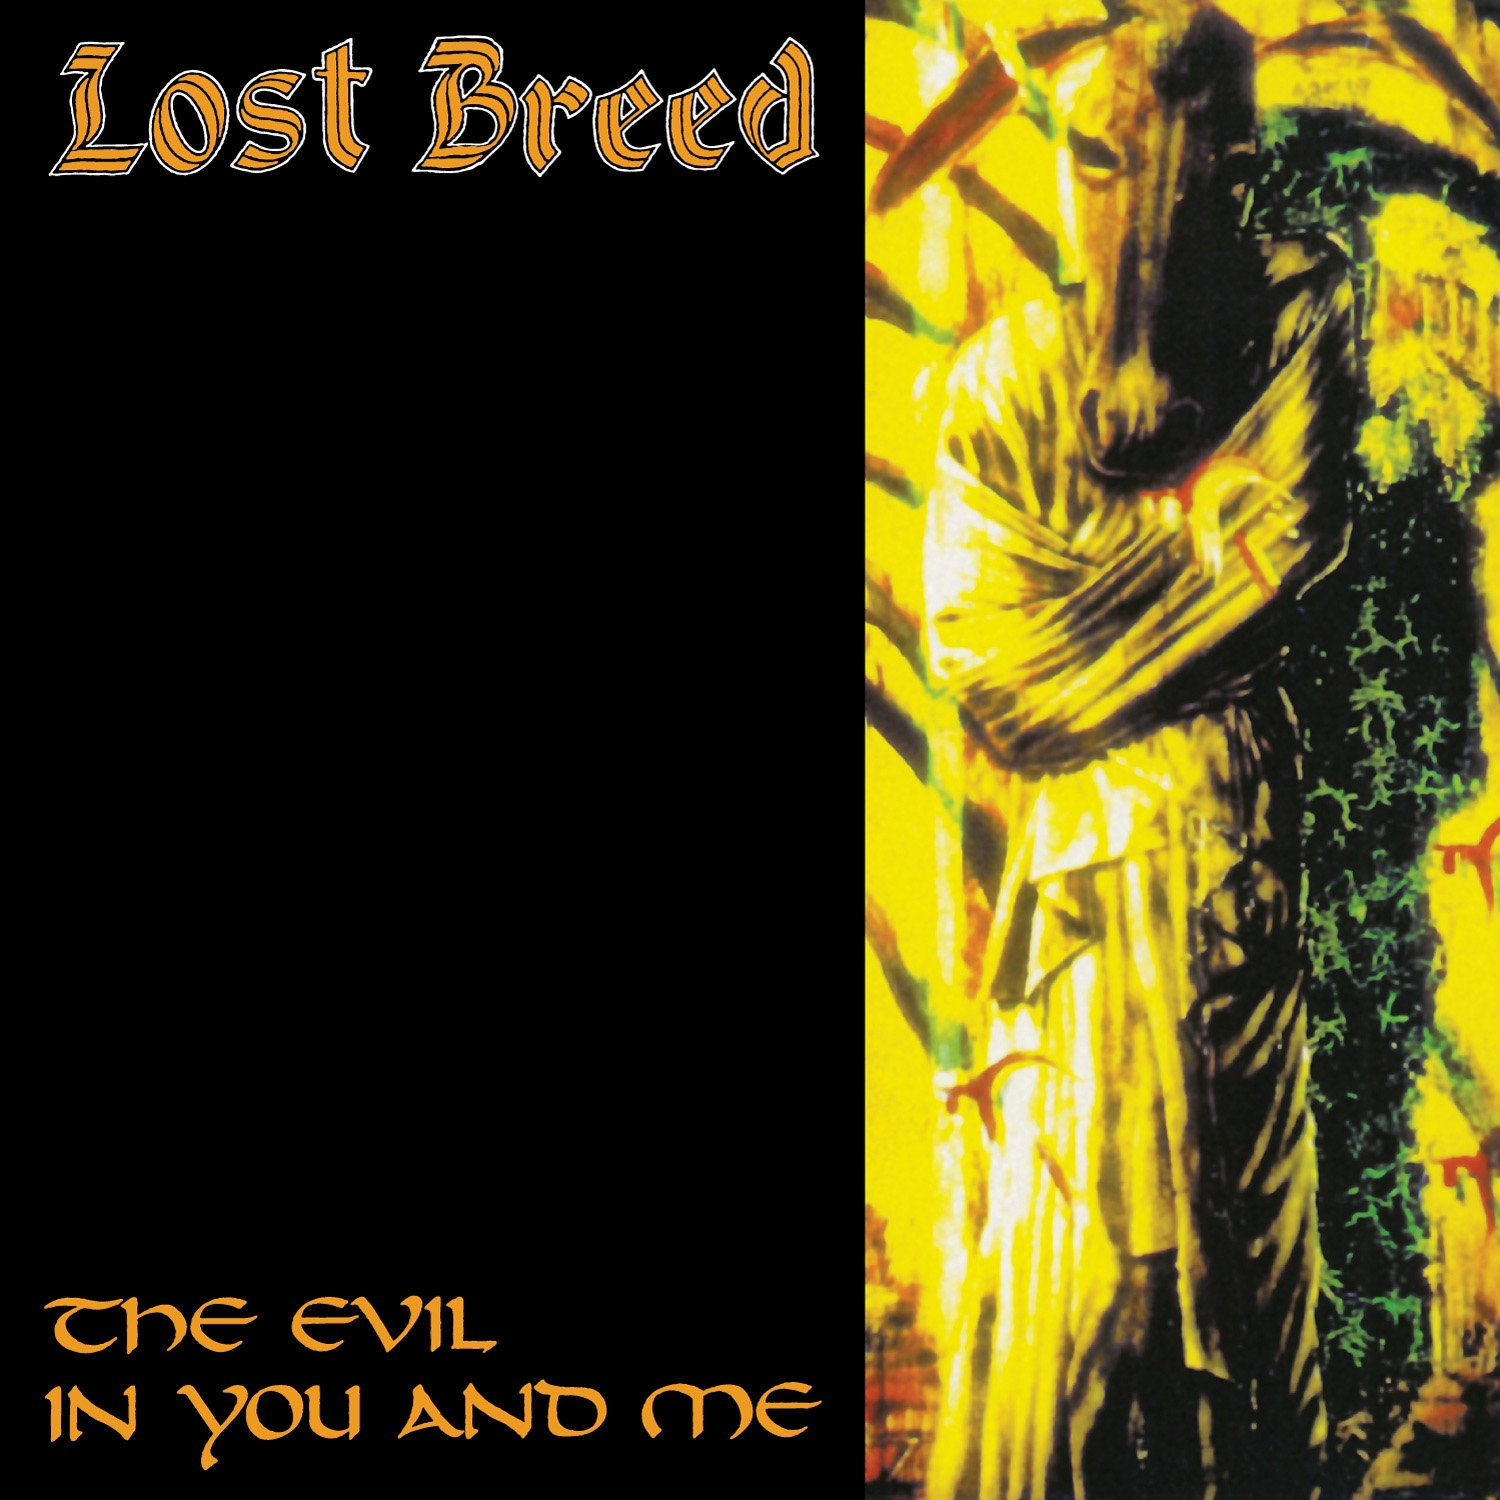 CD : Lost Breed - The Evil In You And Me (CD)